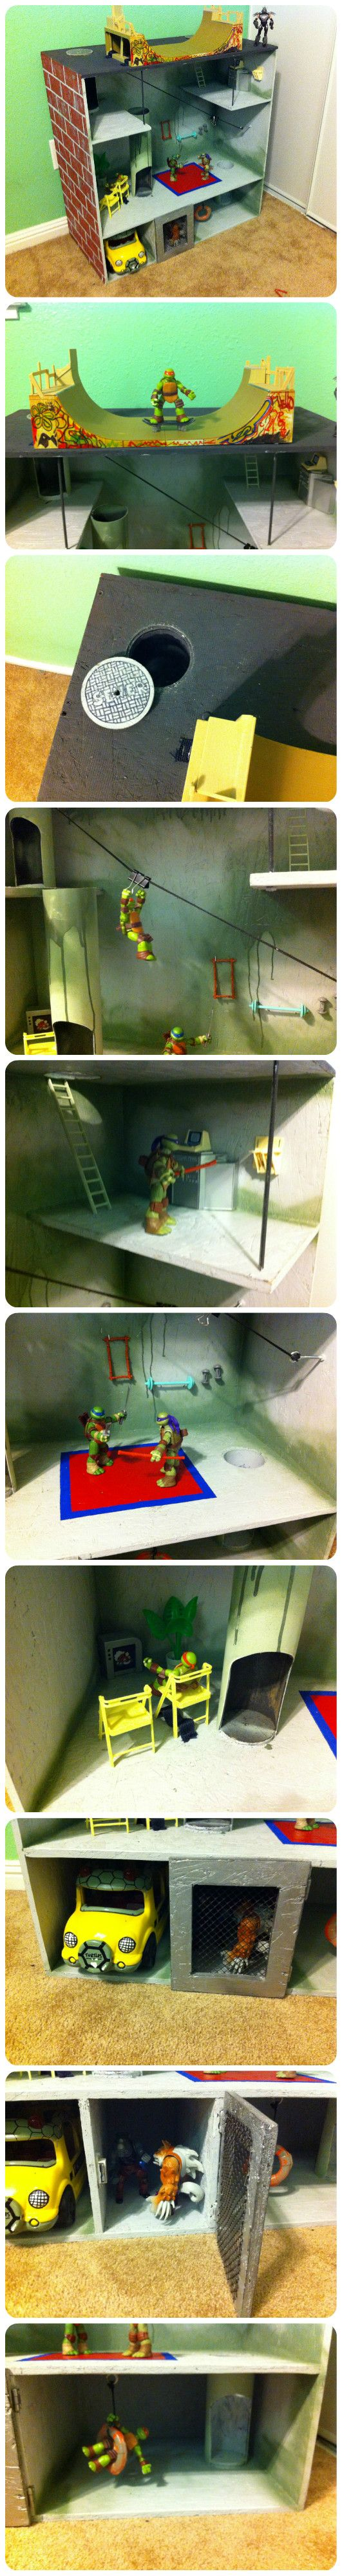 Home-made TMNT ninja turtle sewer lair for Pierce's birthday. Complete with skate ramp, sewer tunnels, zip line, dojo training room, Shellraiser van parking and of course a jail for the villains! Hand-made, built by my father out of plywood, then hand painted and decorated by yours truly. This will get hundreds of hours of play from my TMNT loving boys!